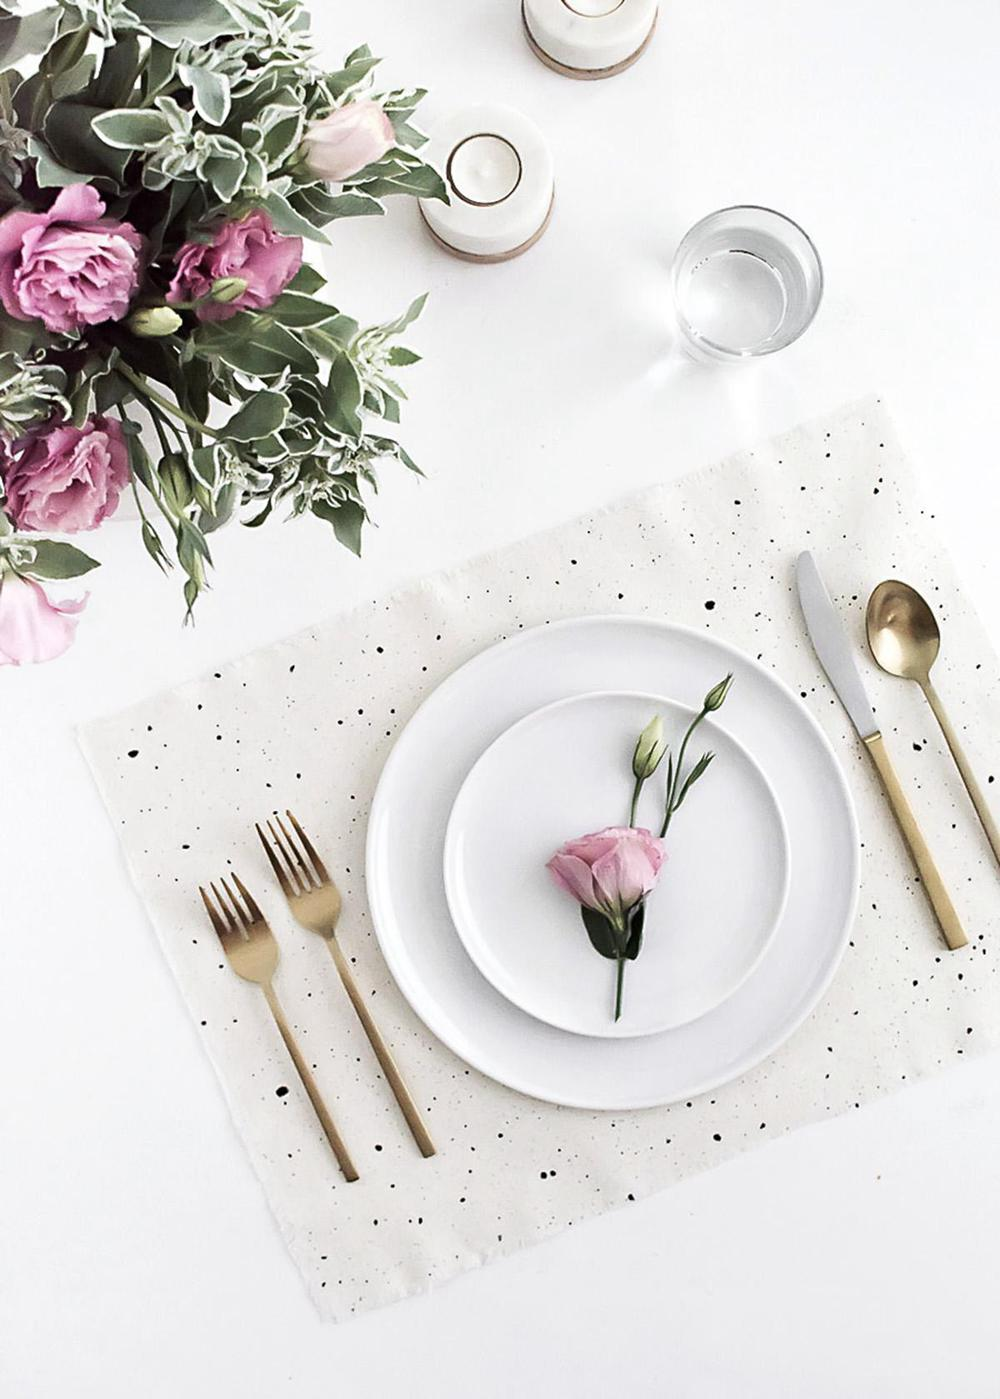 17. DIY Speckled Placemats